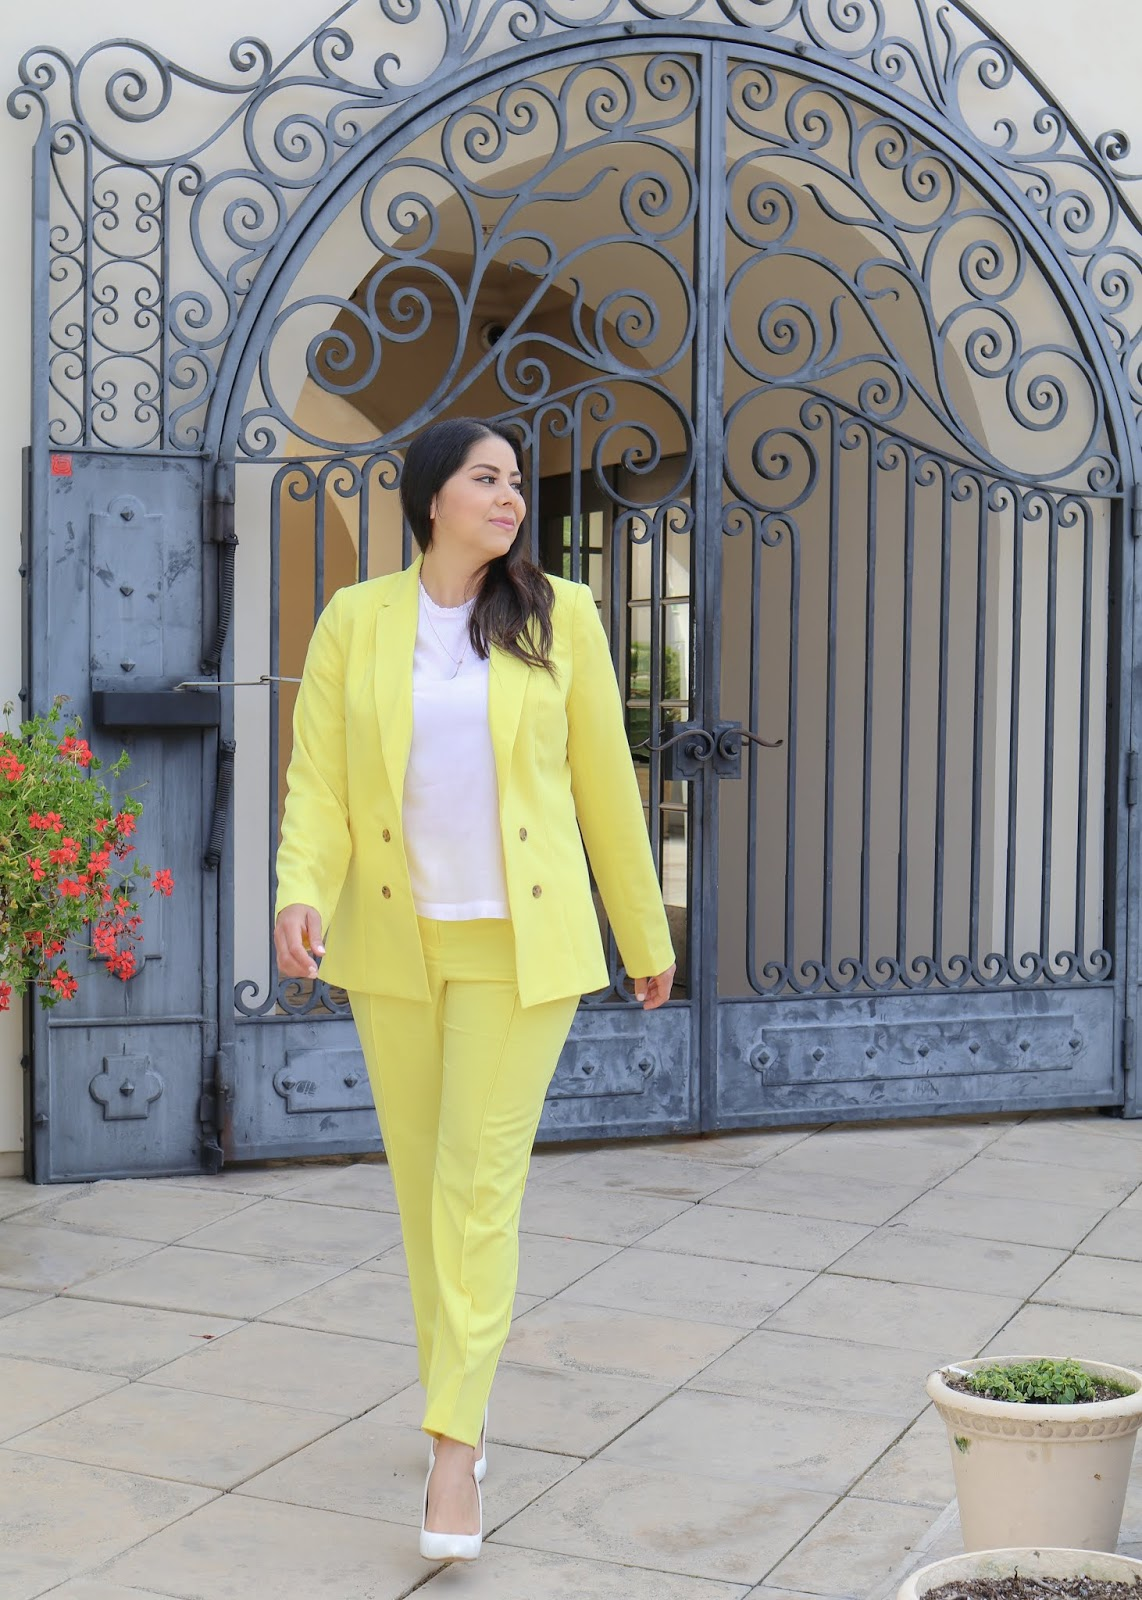 AllAtJCP, JCPenney Yellow trousers, Affordable Spring fashion